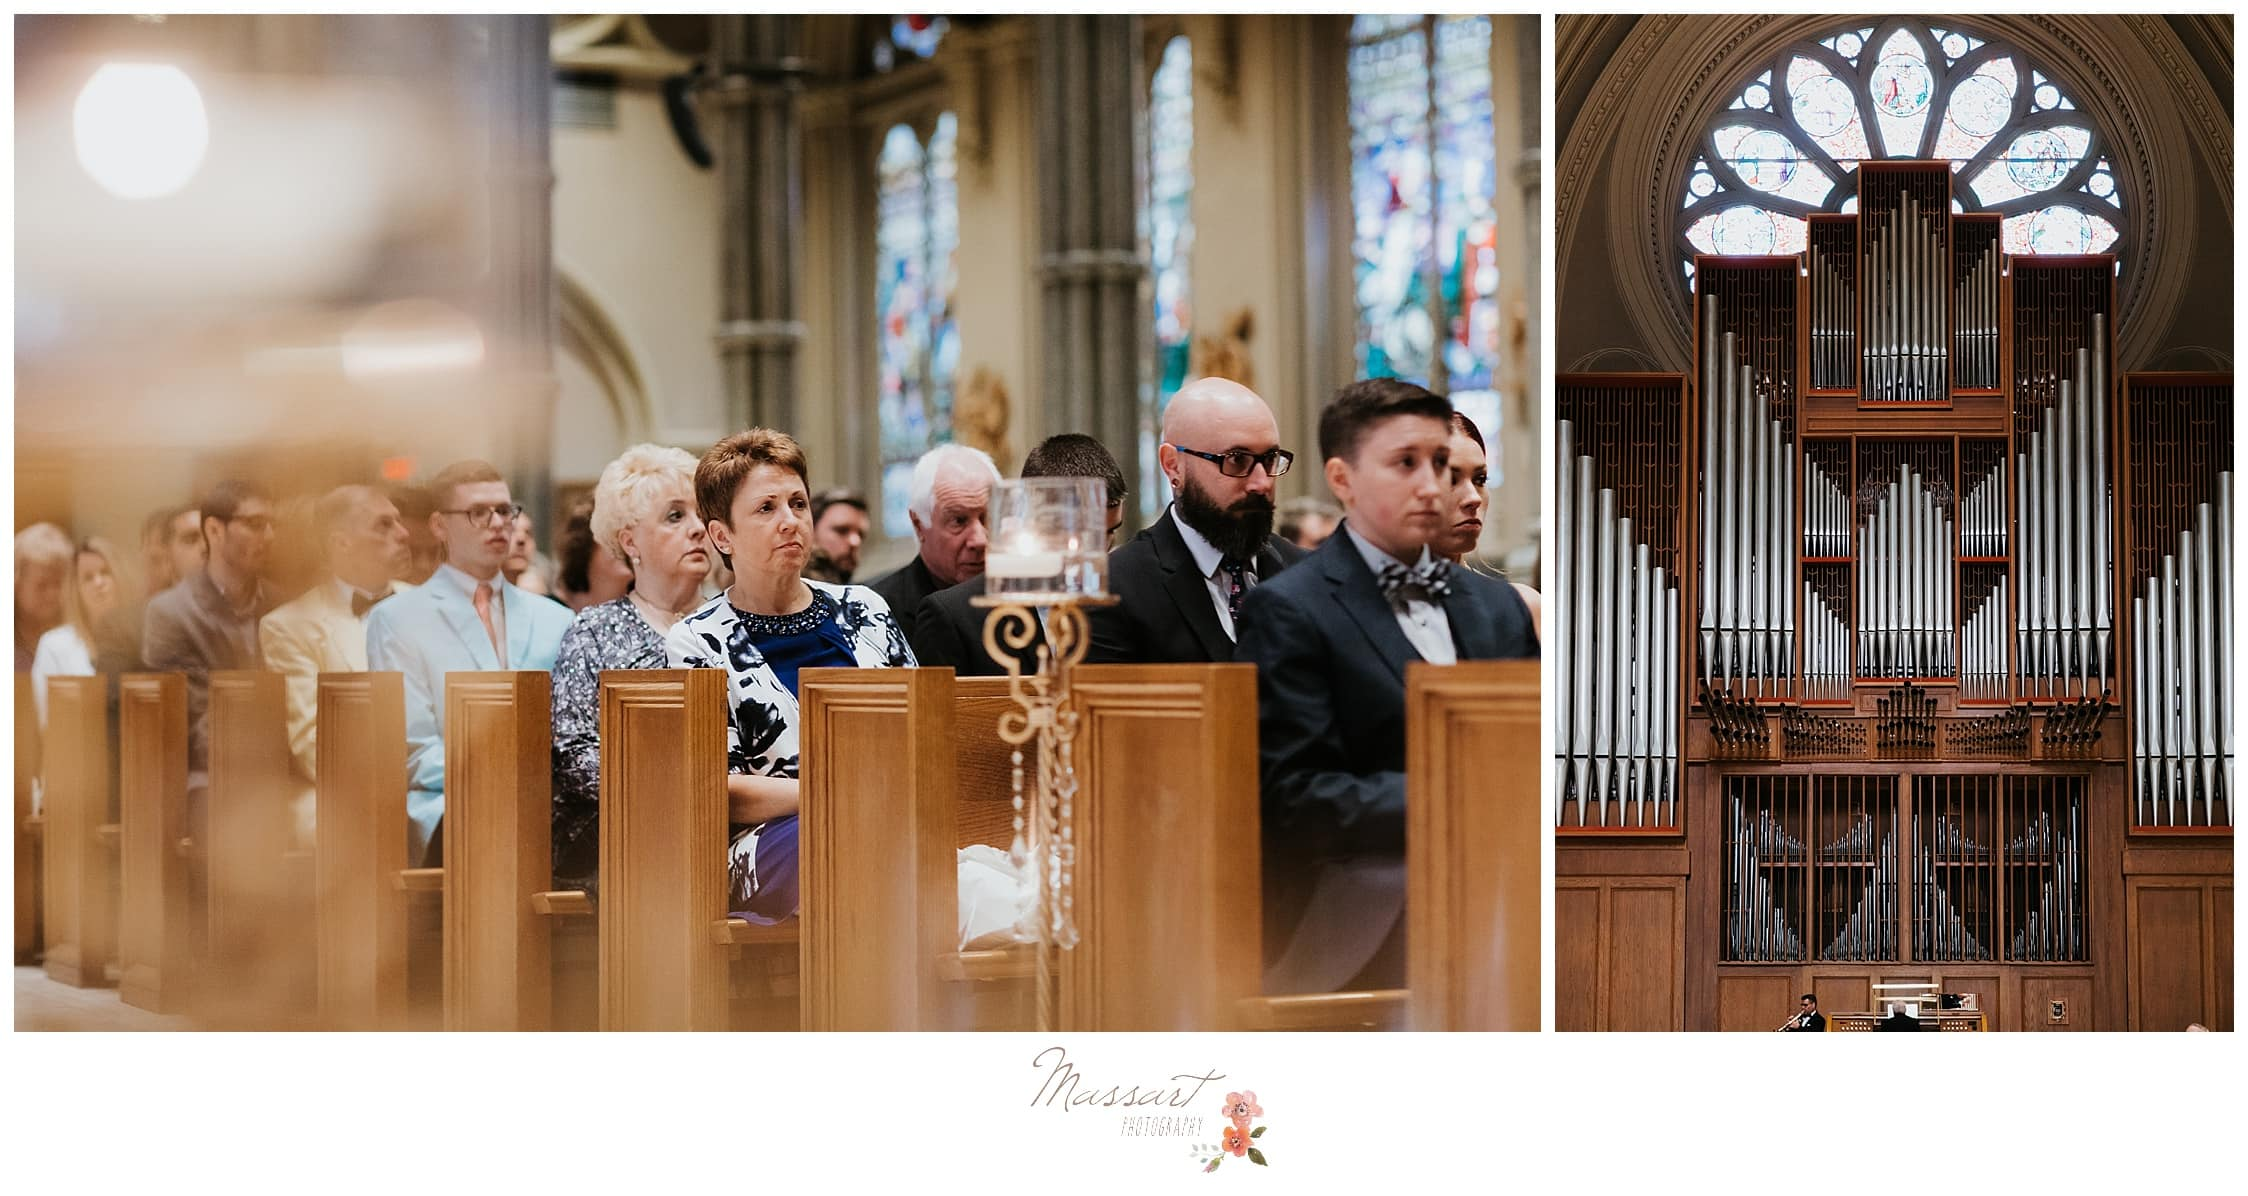 Portraits of the wedding guests and the organ at the wedding ceremony photographed by Massart Photography Rhode Island